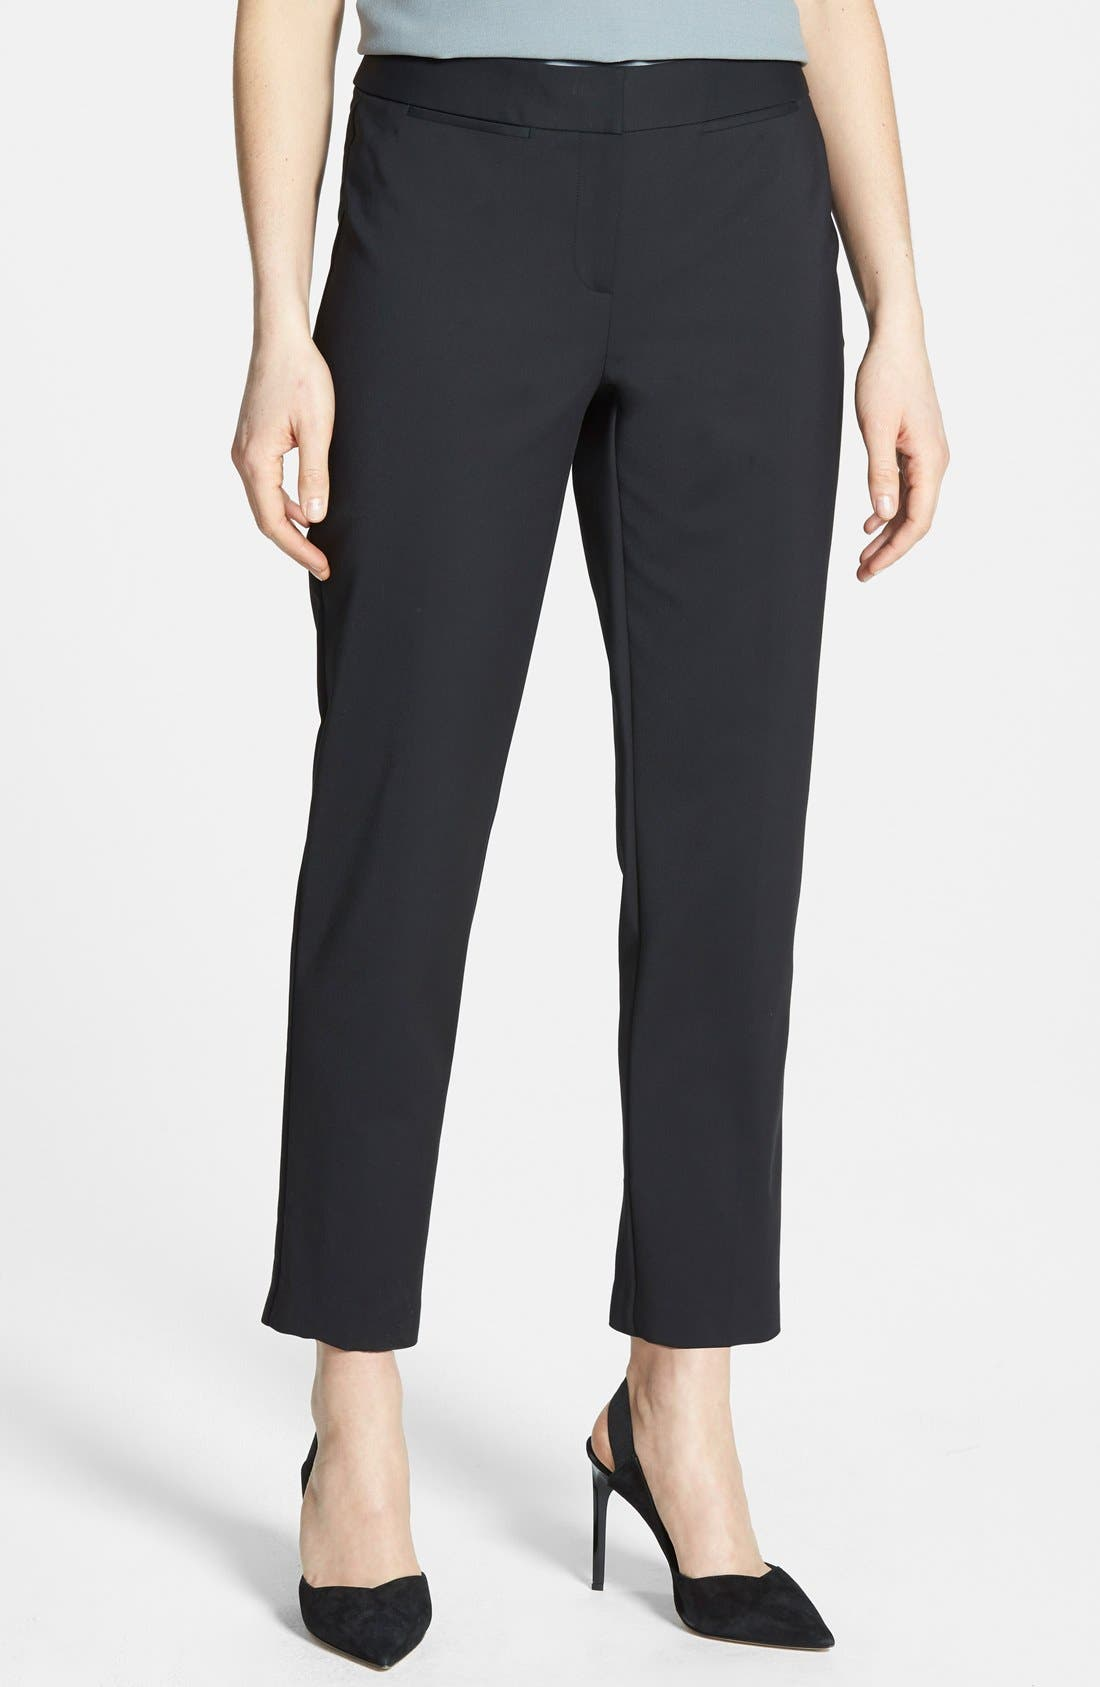 NORDSTROM COLLECTION,                             'Veloria' Slim Ankle Pants,                             Main thumbnail 1, color,                             001